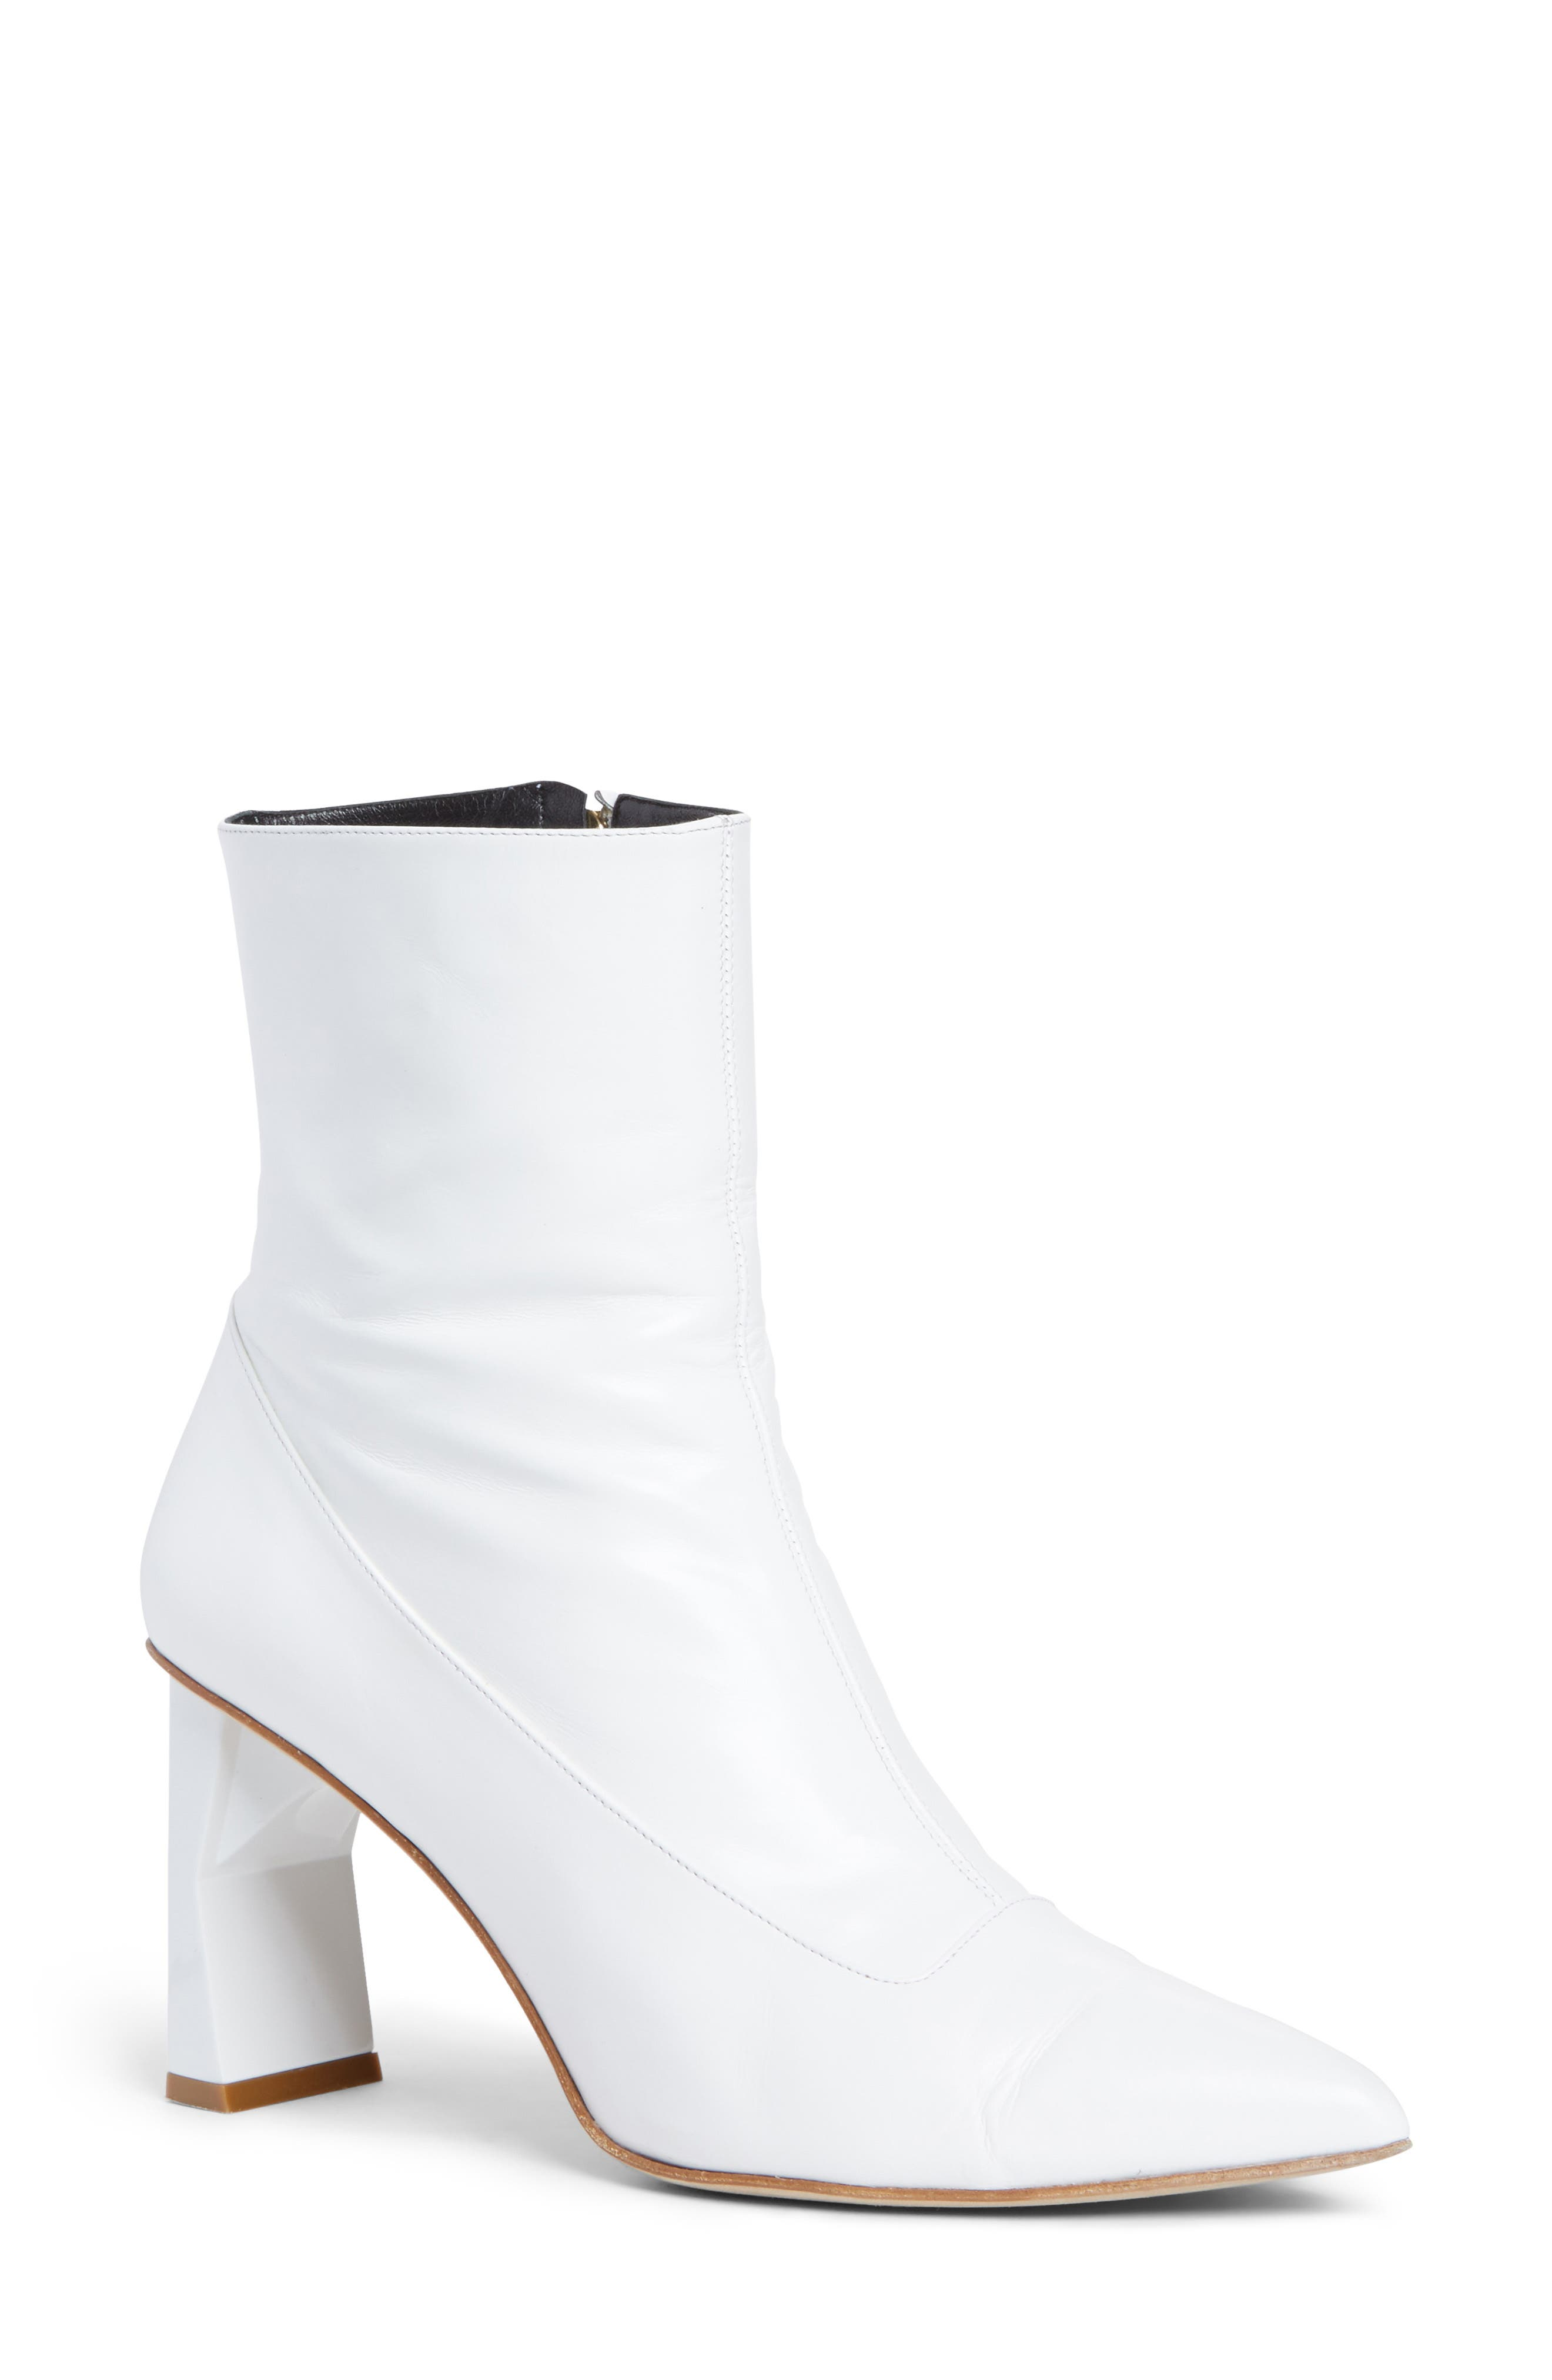 Main Image - Tibi Alexis Pointy Toe Bootie (Women)